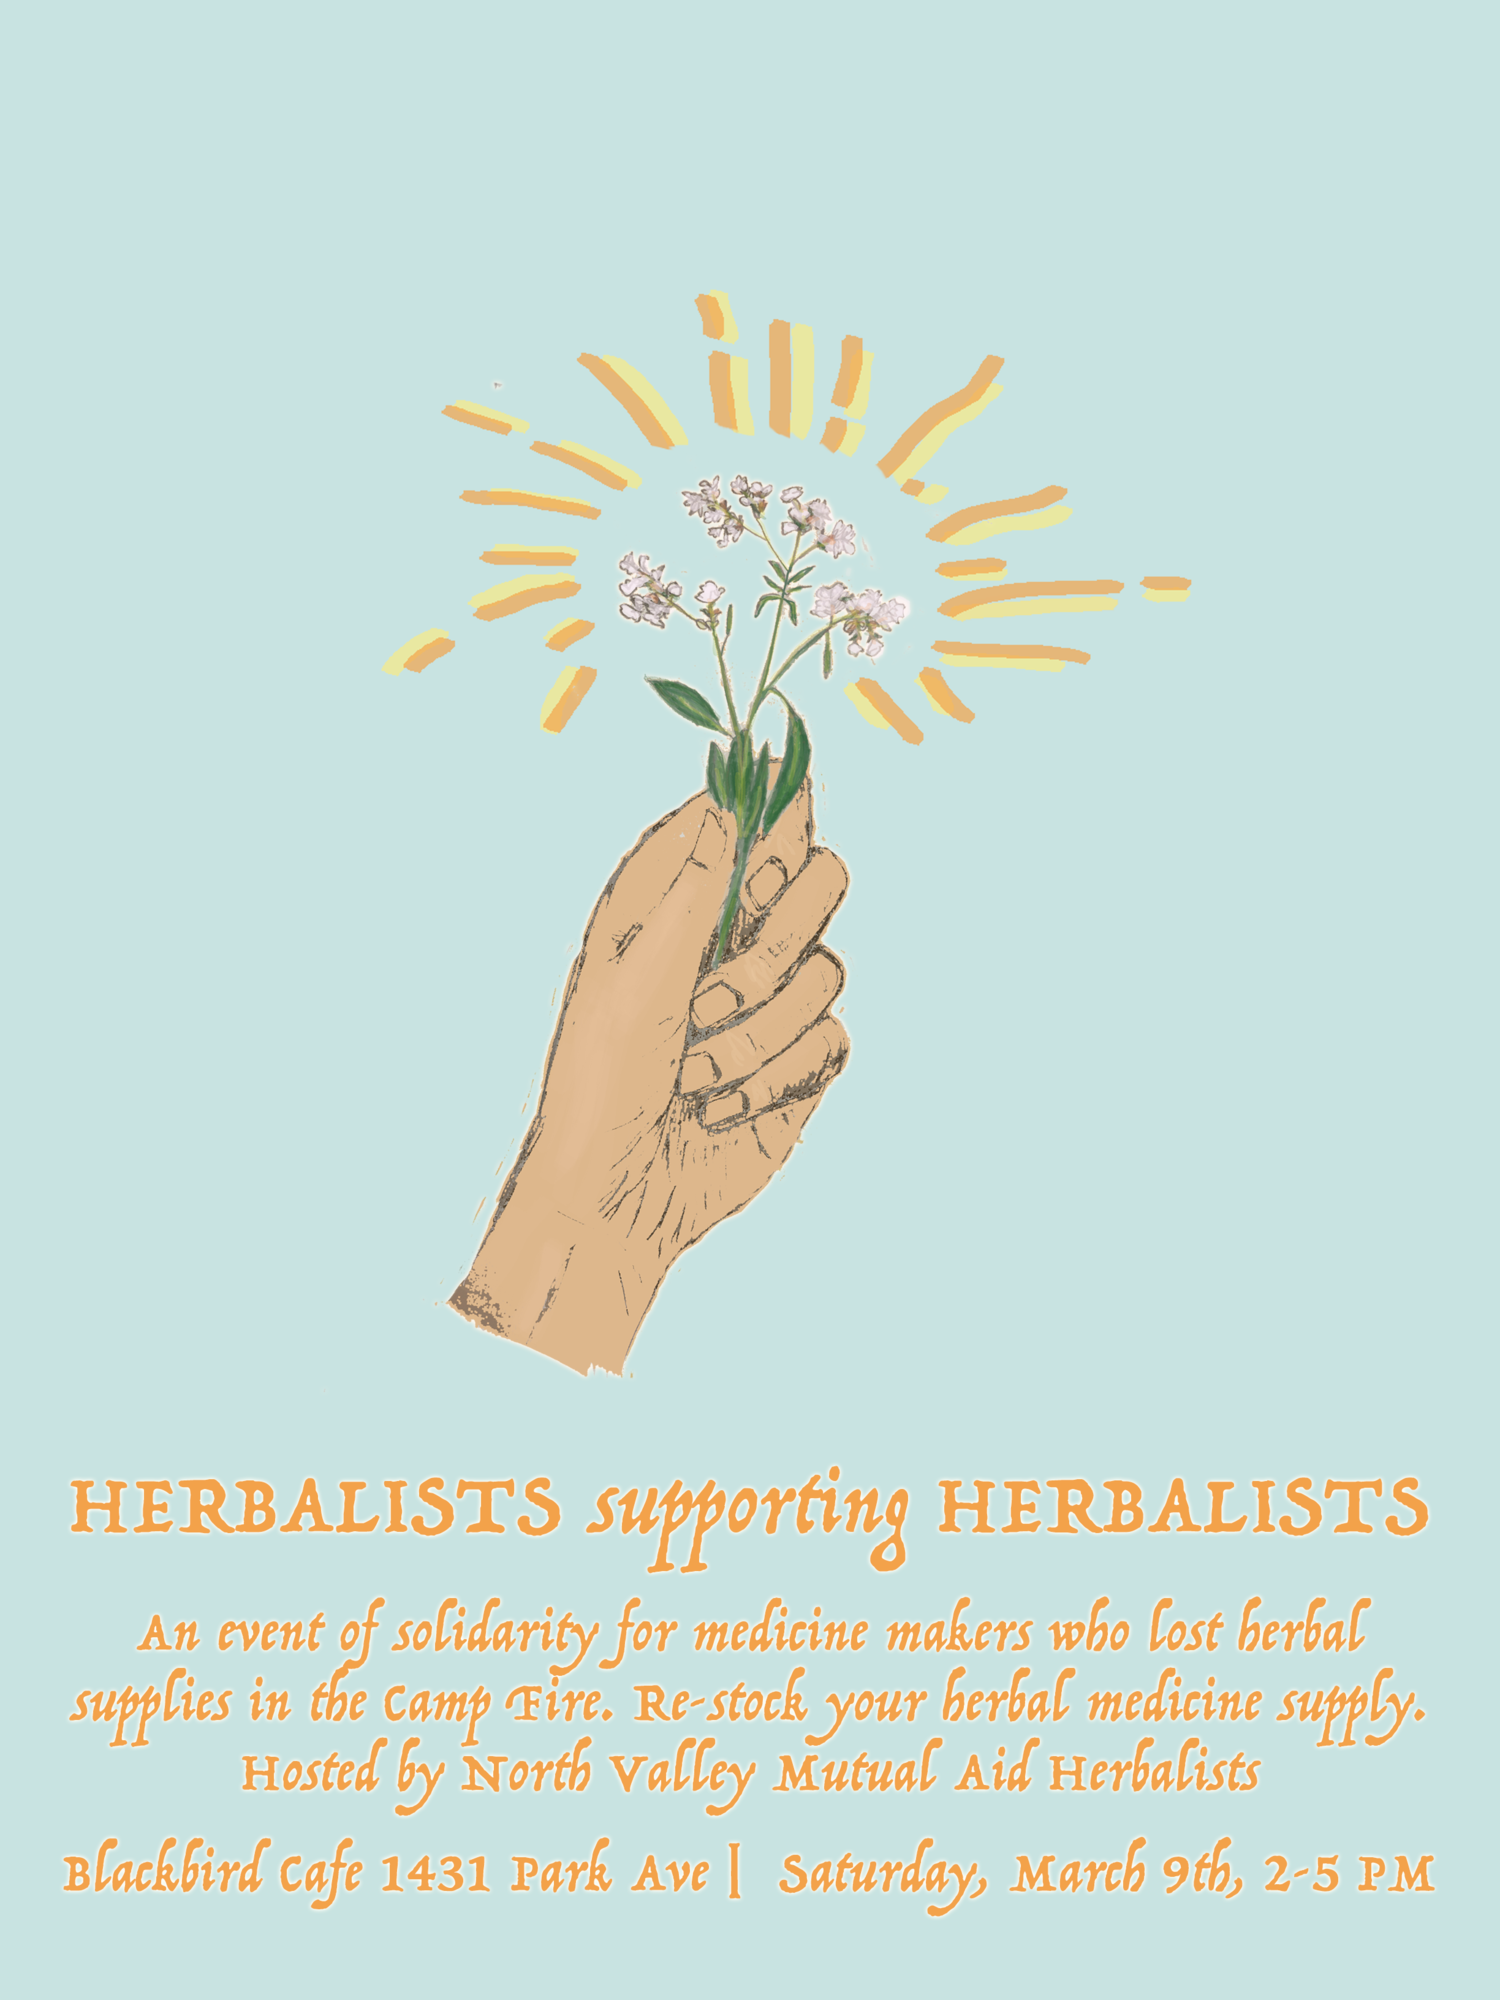 Herbalists Supporting Herbalists - Camp Fire Mutual Aid